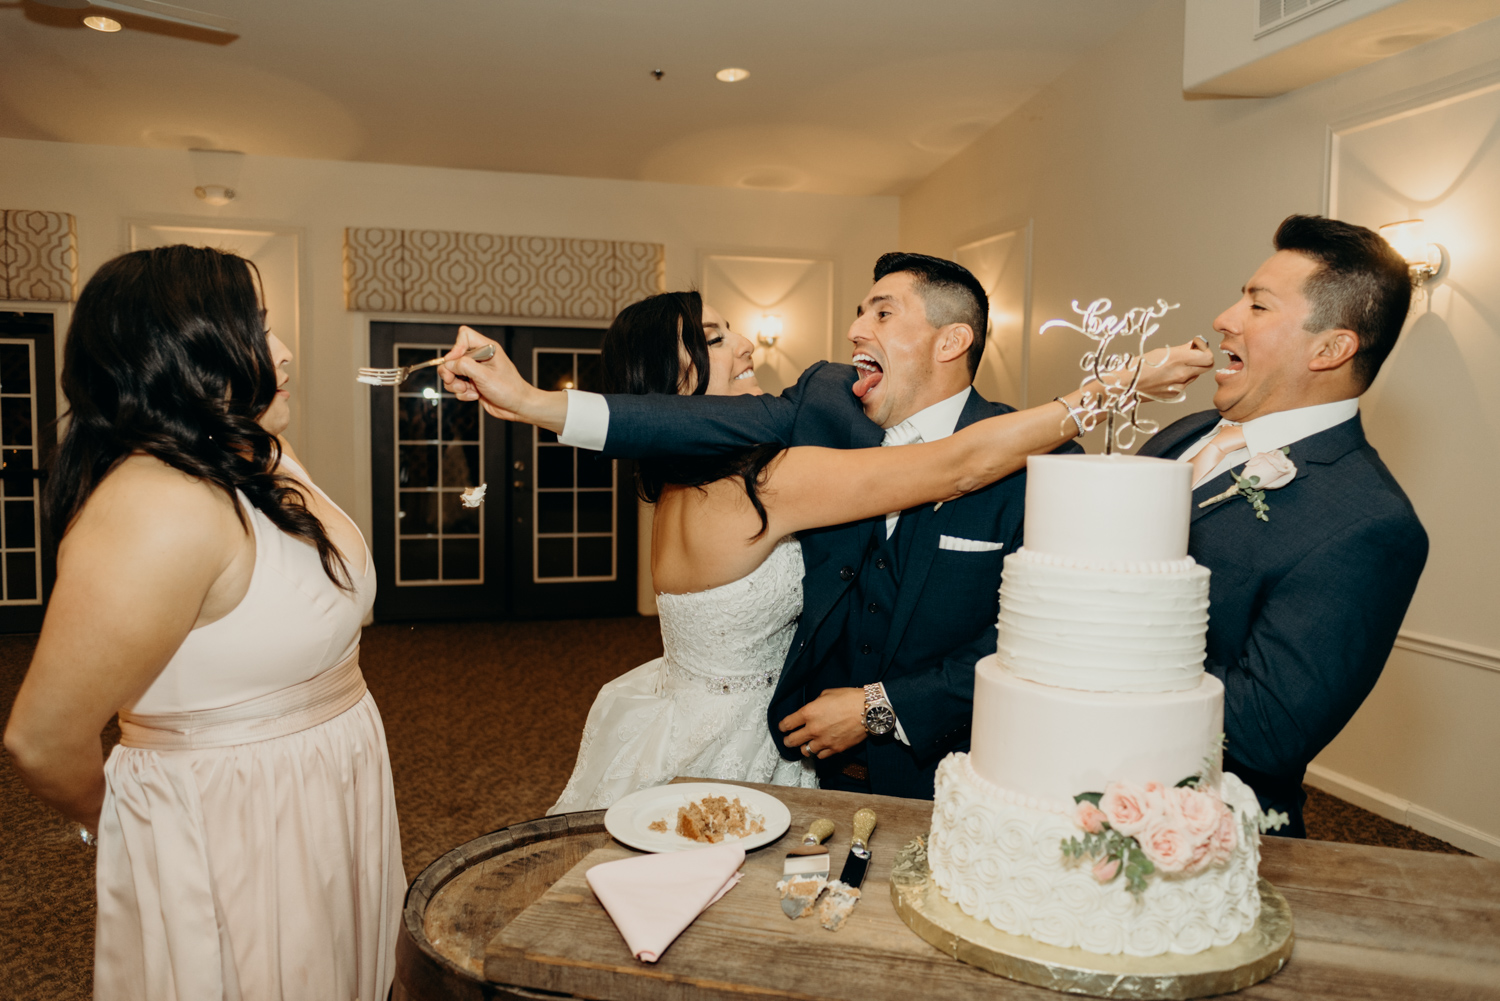 Couple cutting their wedding cake during their reception at Venue at the Grove in Phoenix, Arizona.